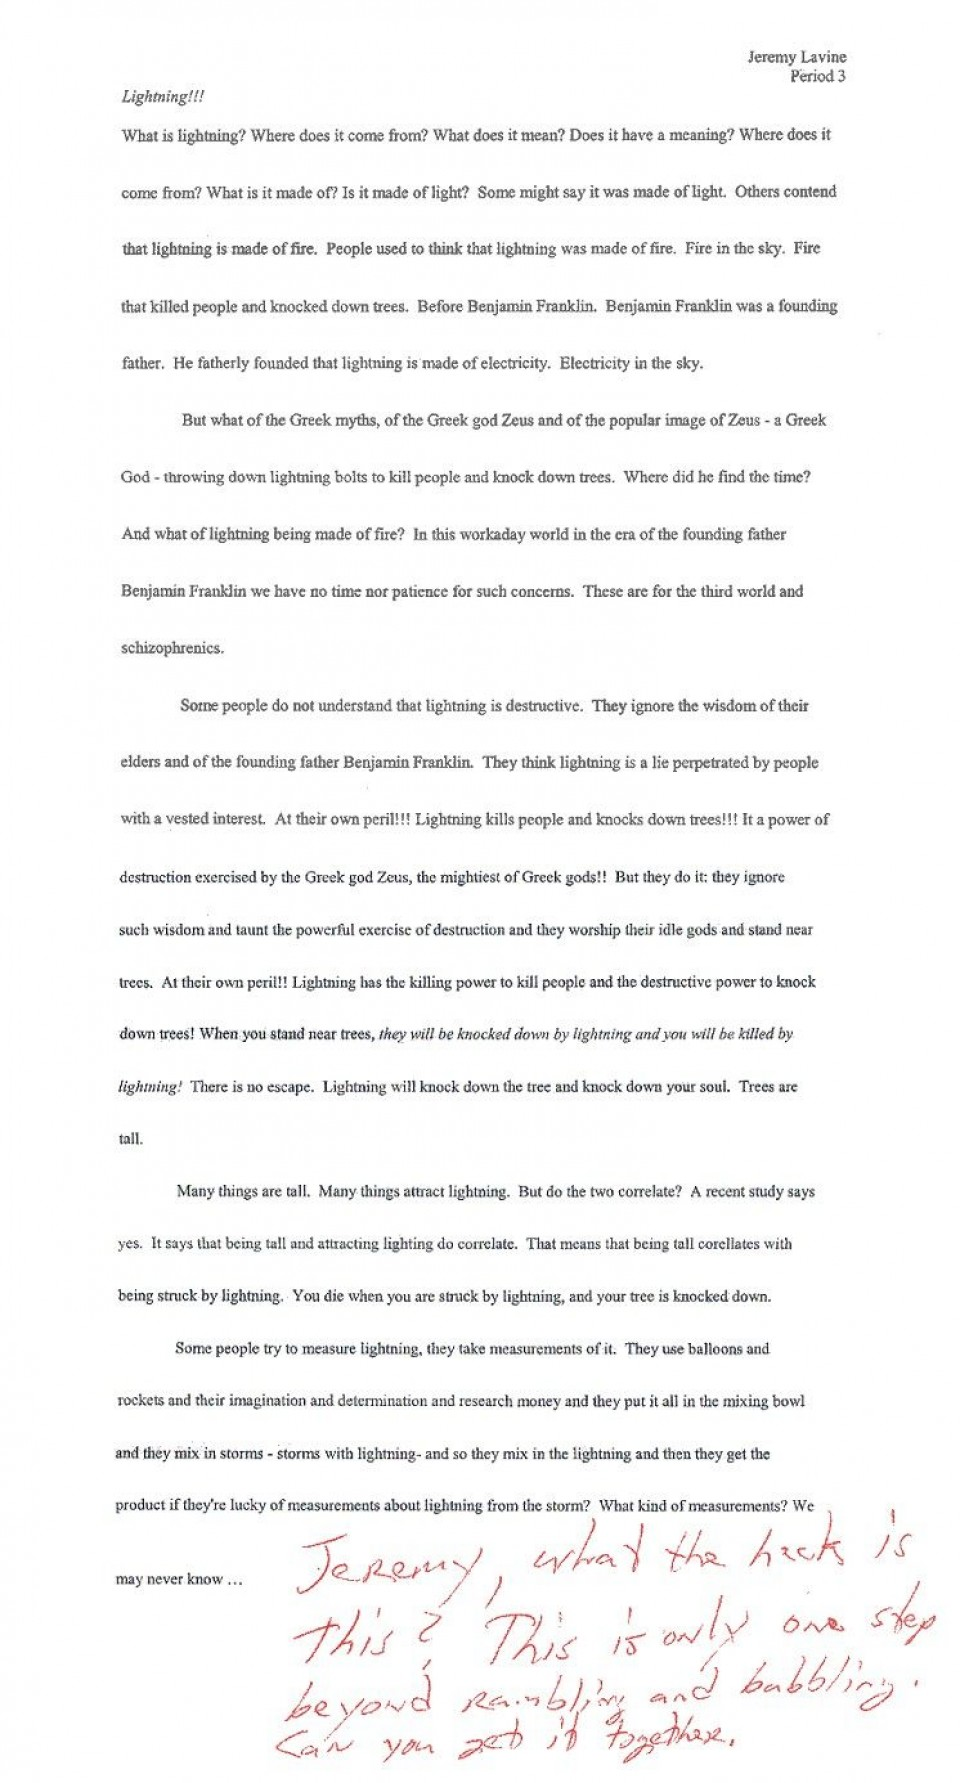 002 Essay  Lightning Funny Essays Stupendous Topics Written By Students For College960